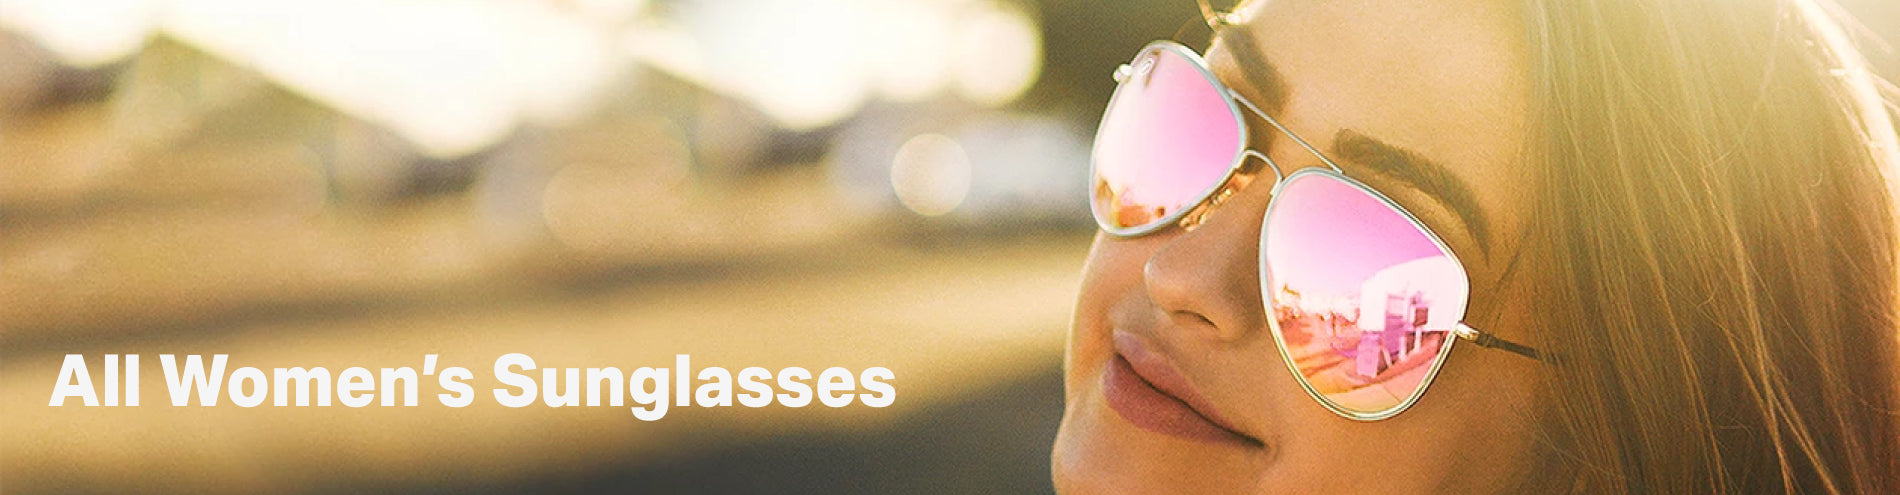 All Women's Sunglasses